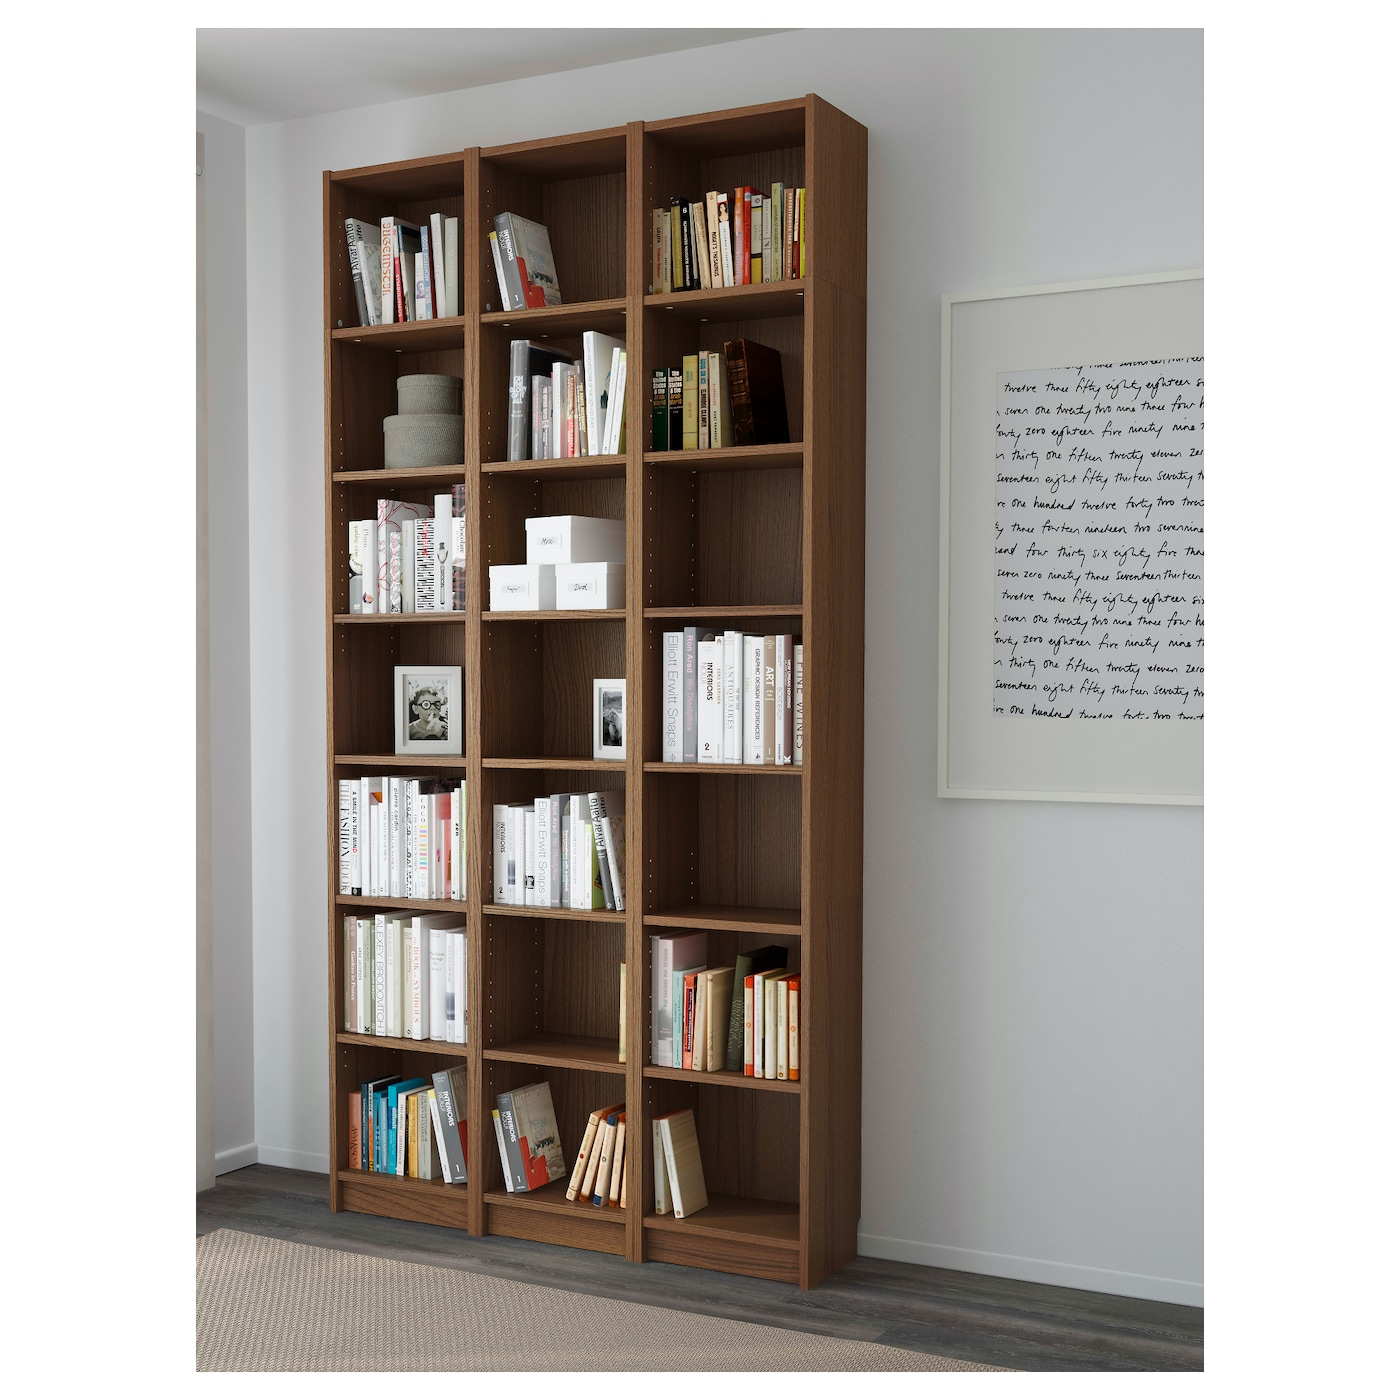 Billy bookcase brown ash veneer 120x237x28 cm ikea - Porte bibliotheque ikea ...